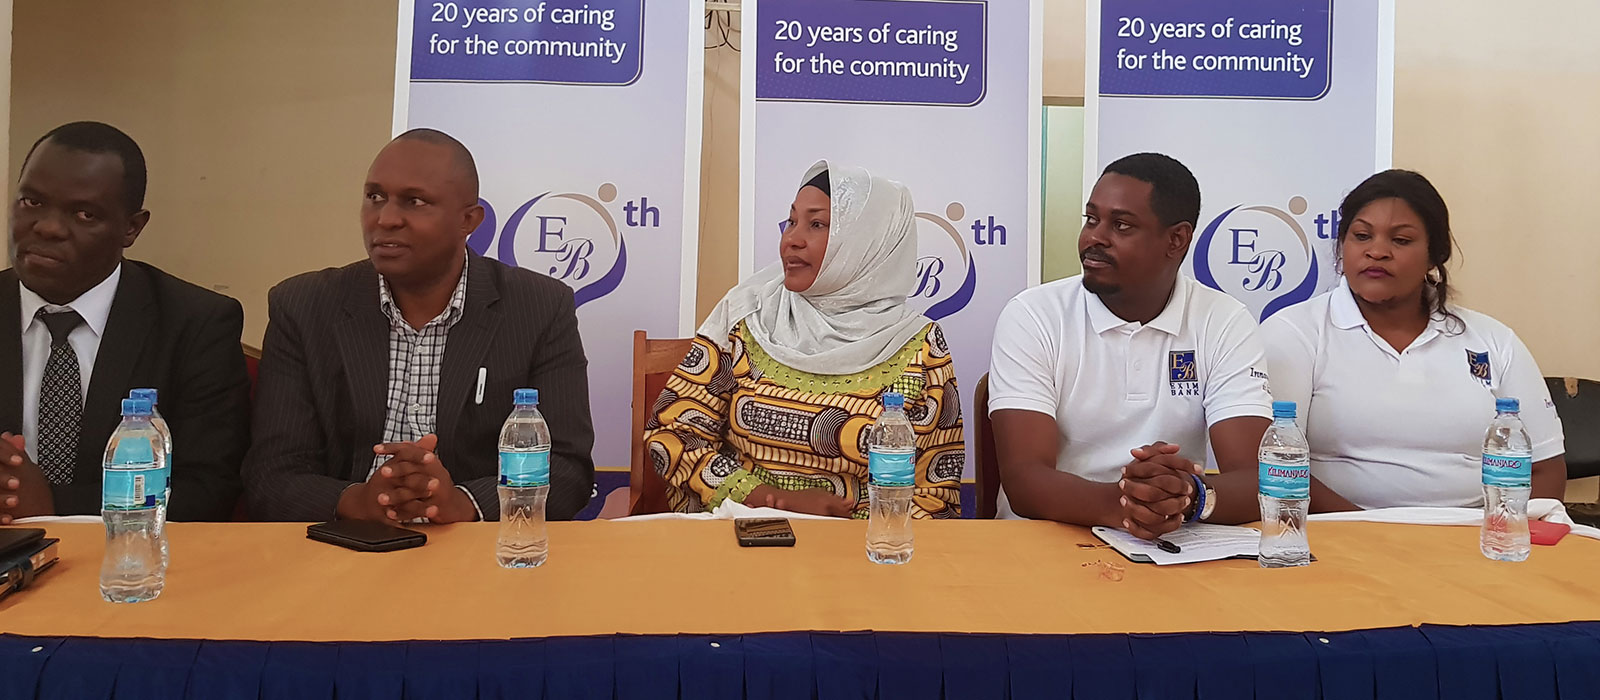 Exim Bank's 20th Anniversary Campaign Reaches Kilimanjaro Region